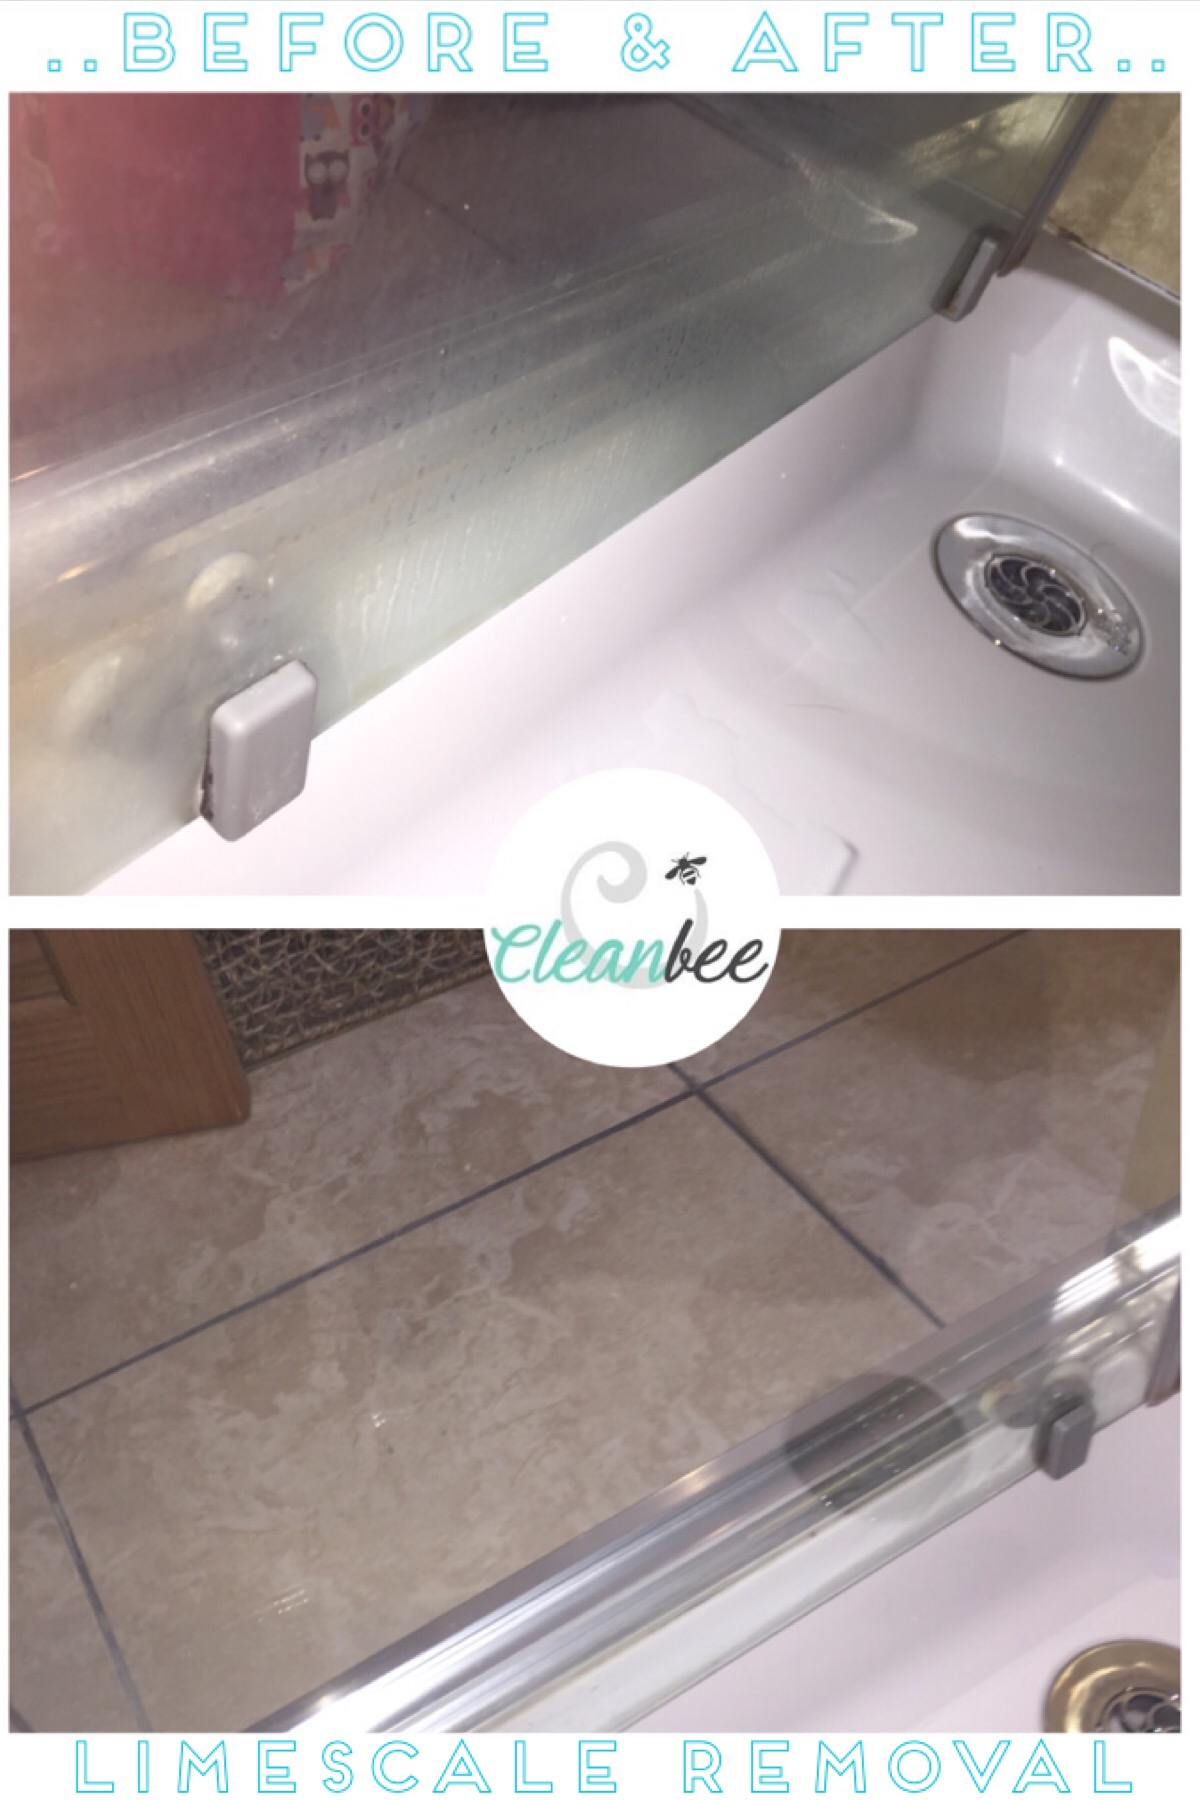 Removing limescale and water marks from your bathroom – Cleanbee ...